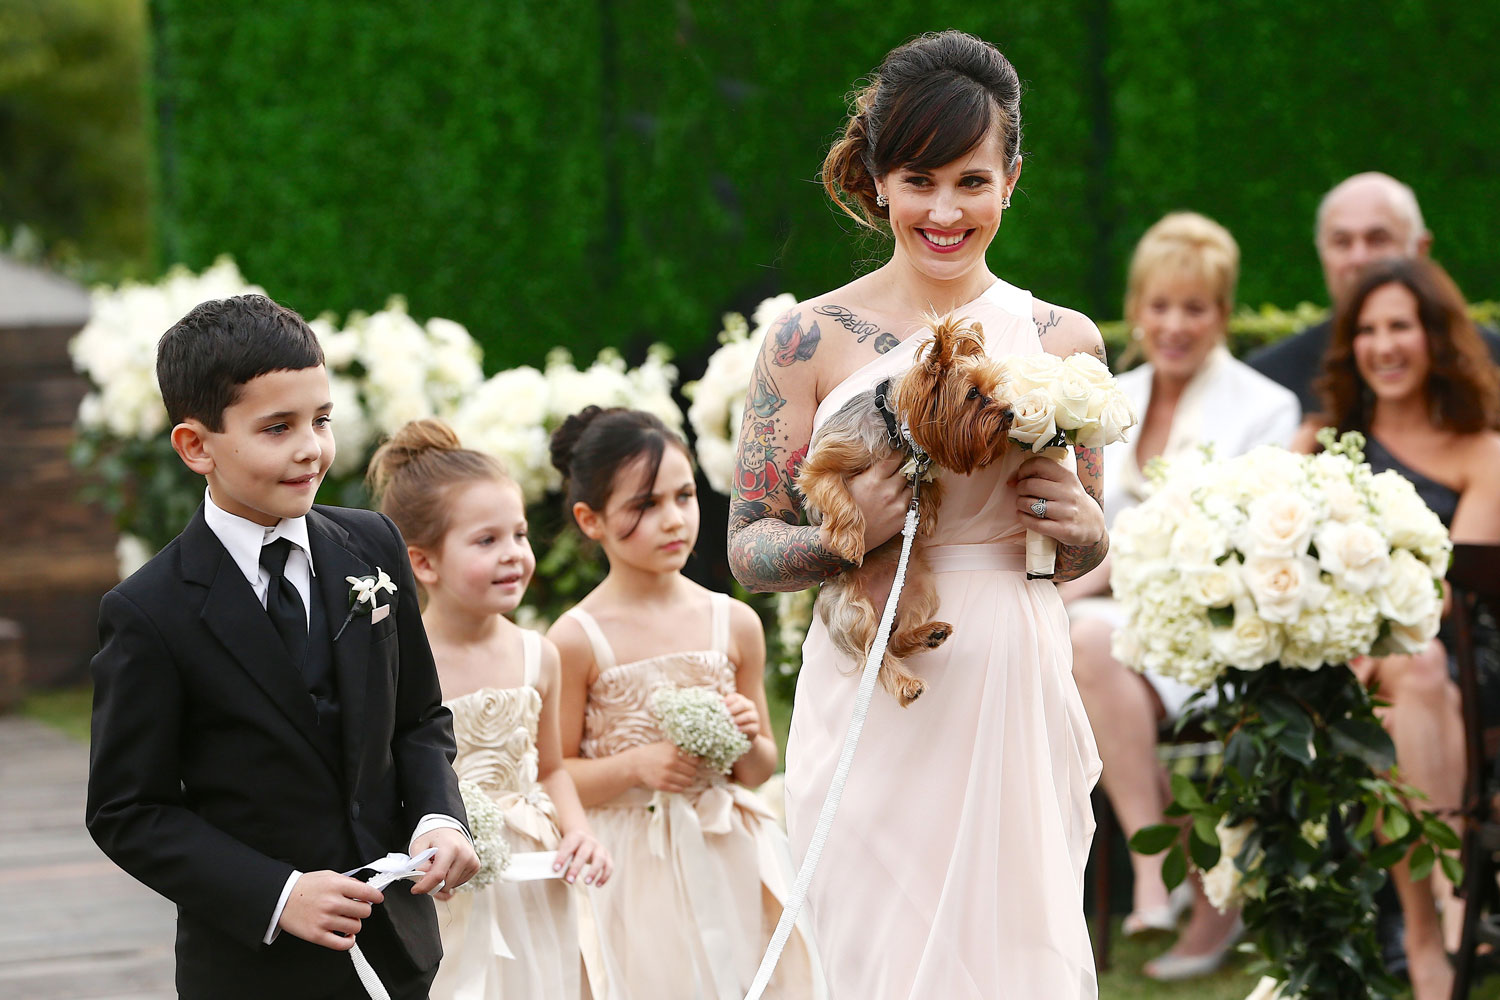 The Bachelorette Ashley Hebert wedding sister maid of honor carrying yorkie dog yorkshire terrier with flower girls ring bearers wedding